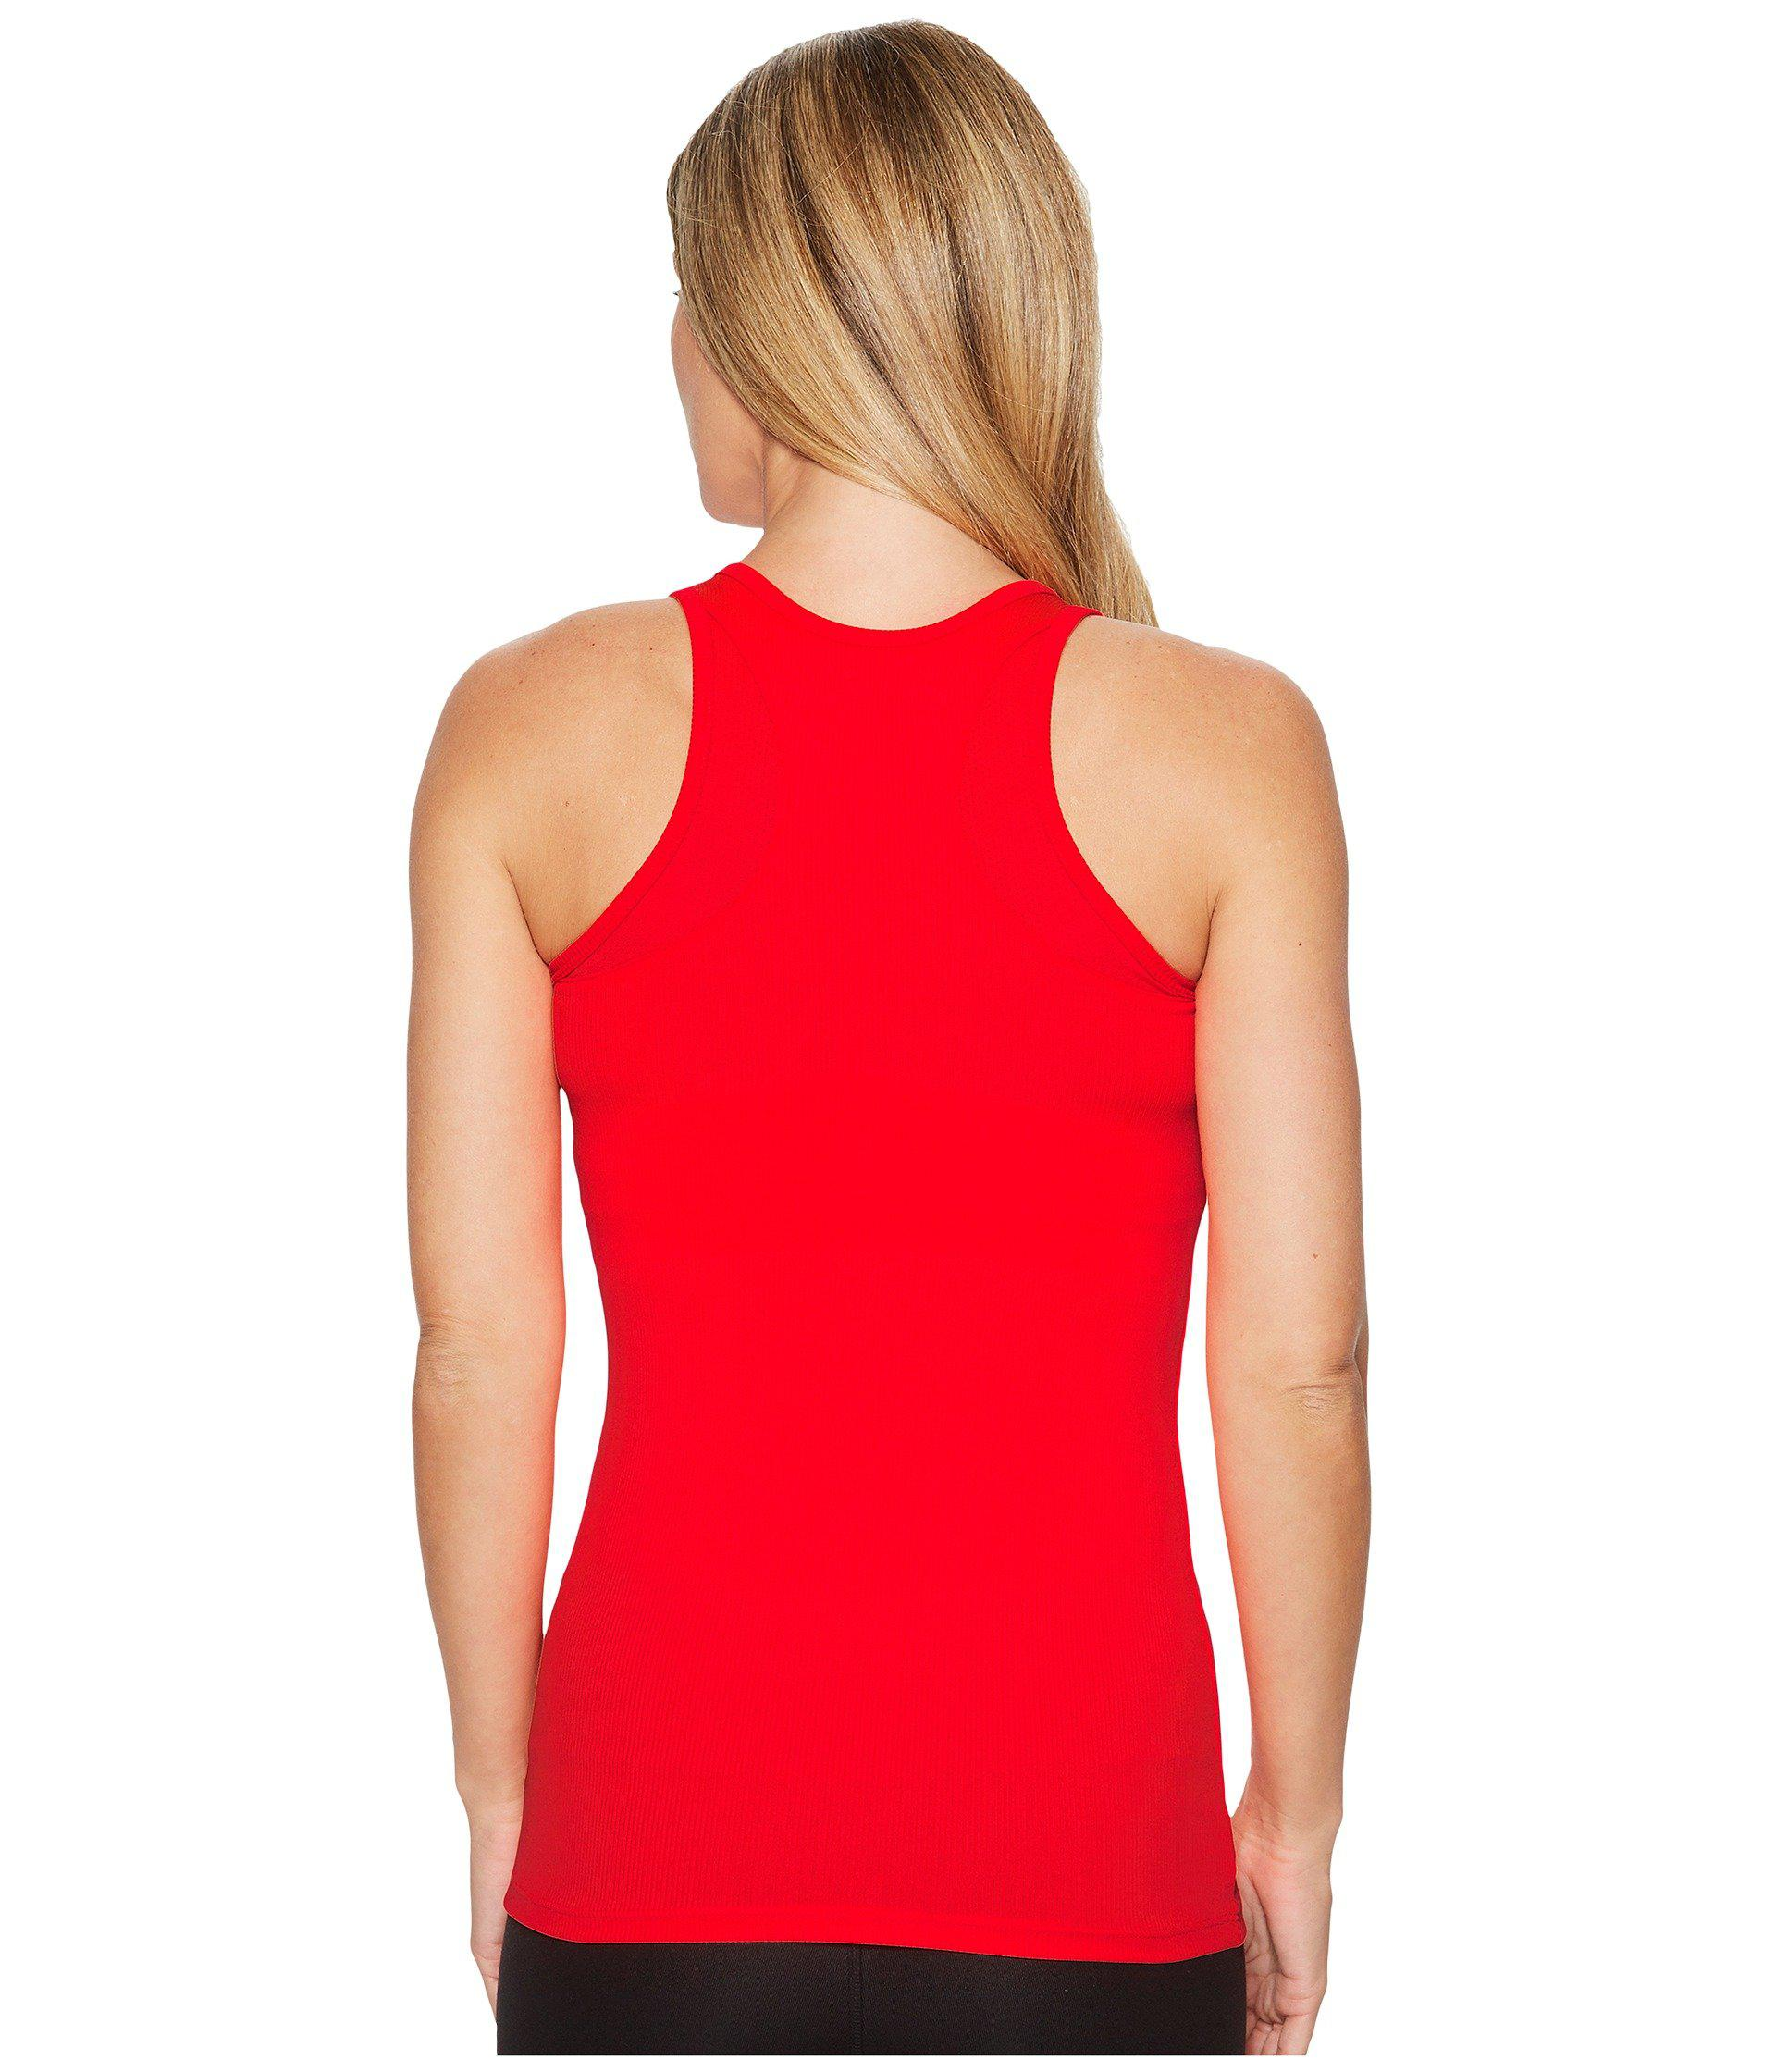 6a116d82efaba Lyst - Under Armour Tech Victory Tank Top in Red